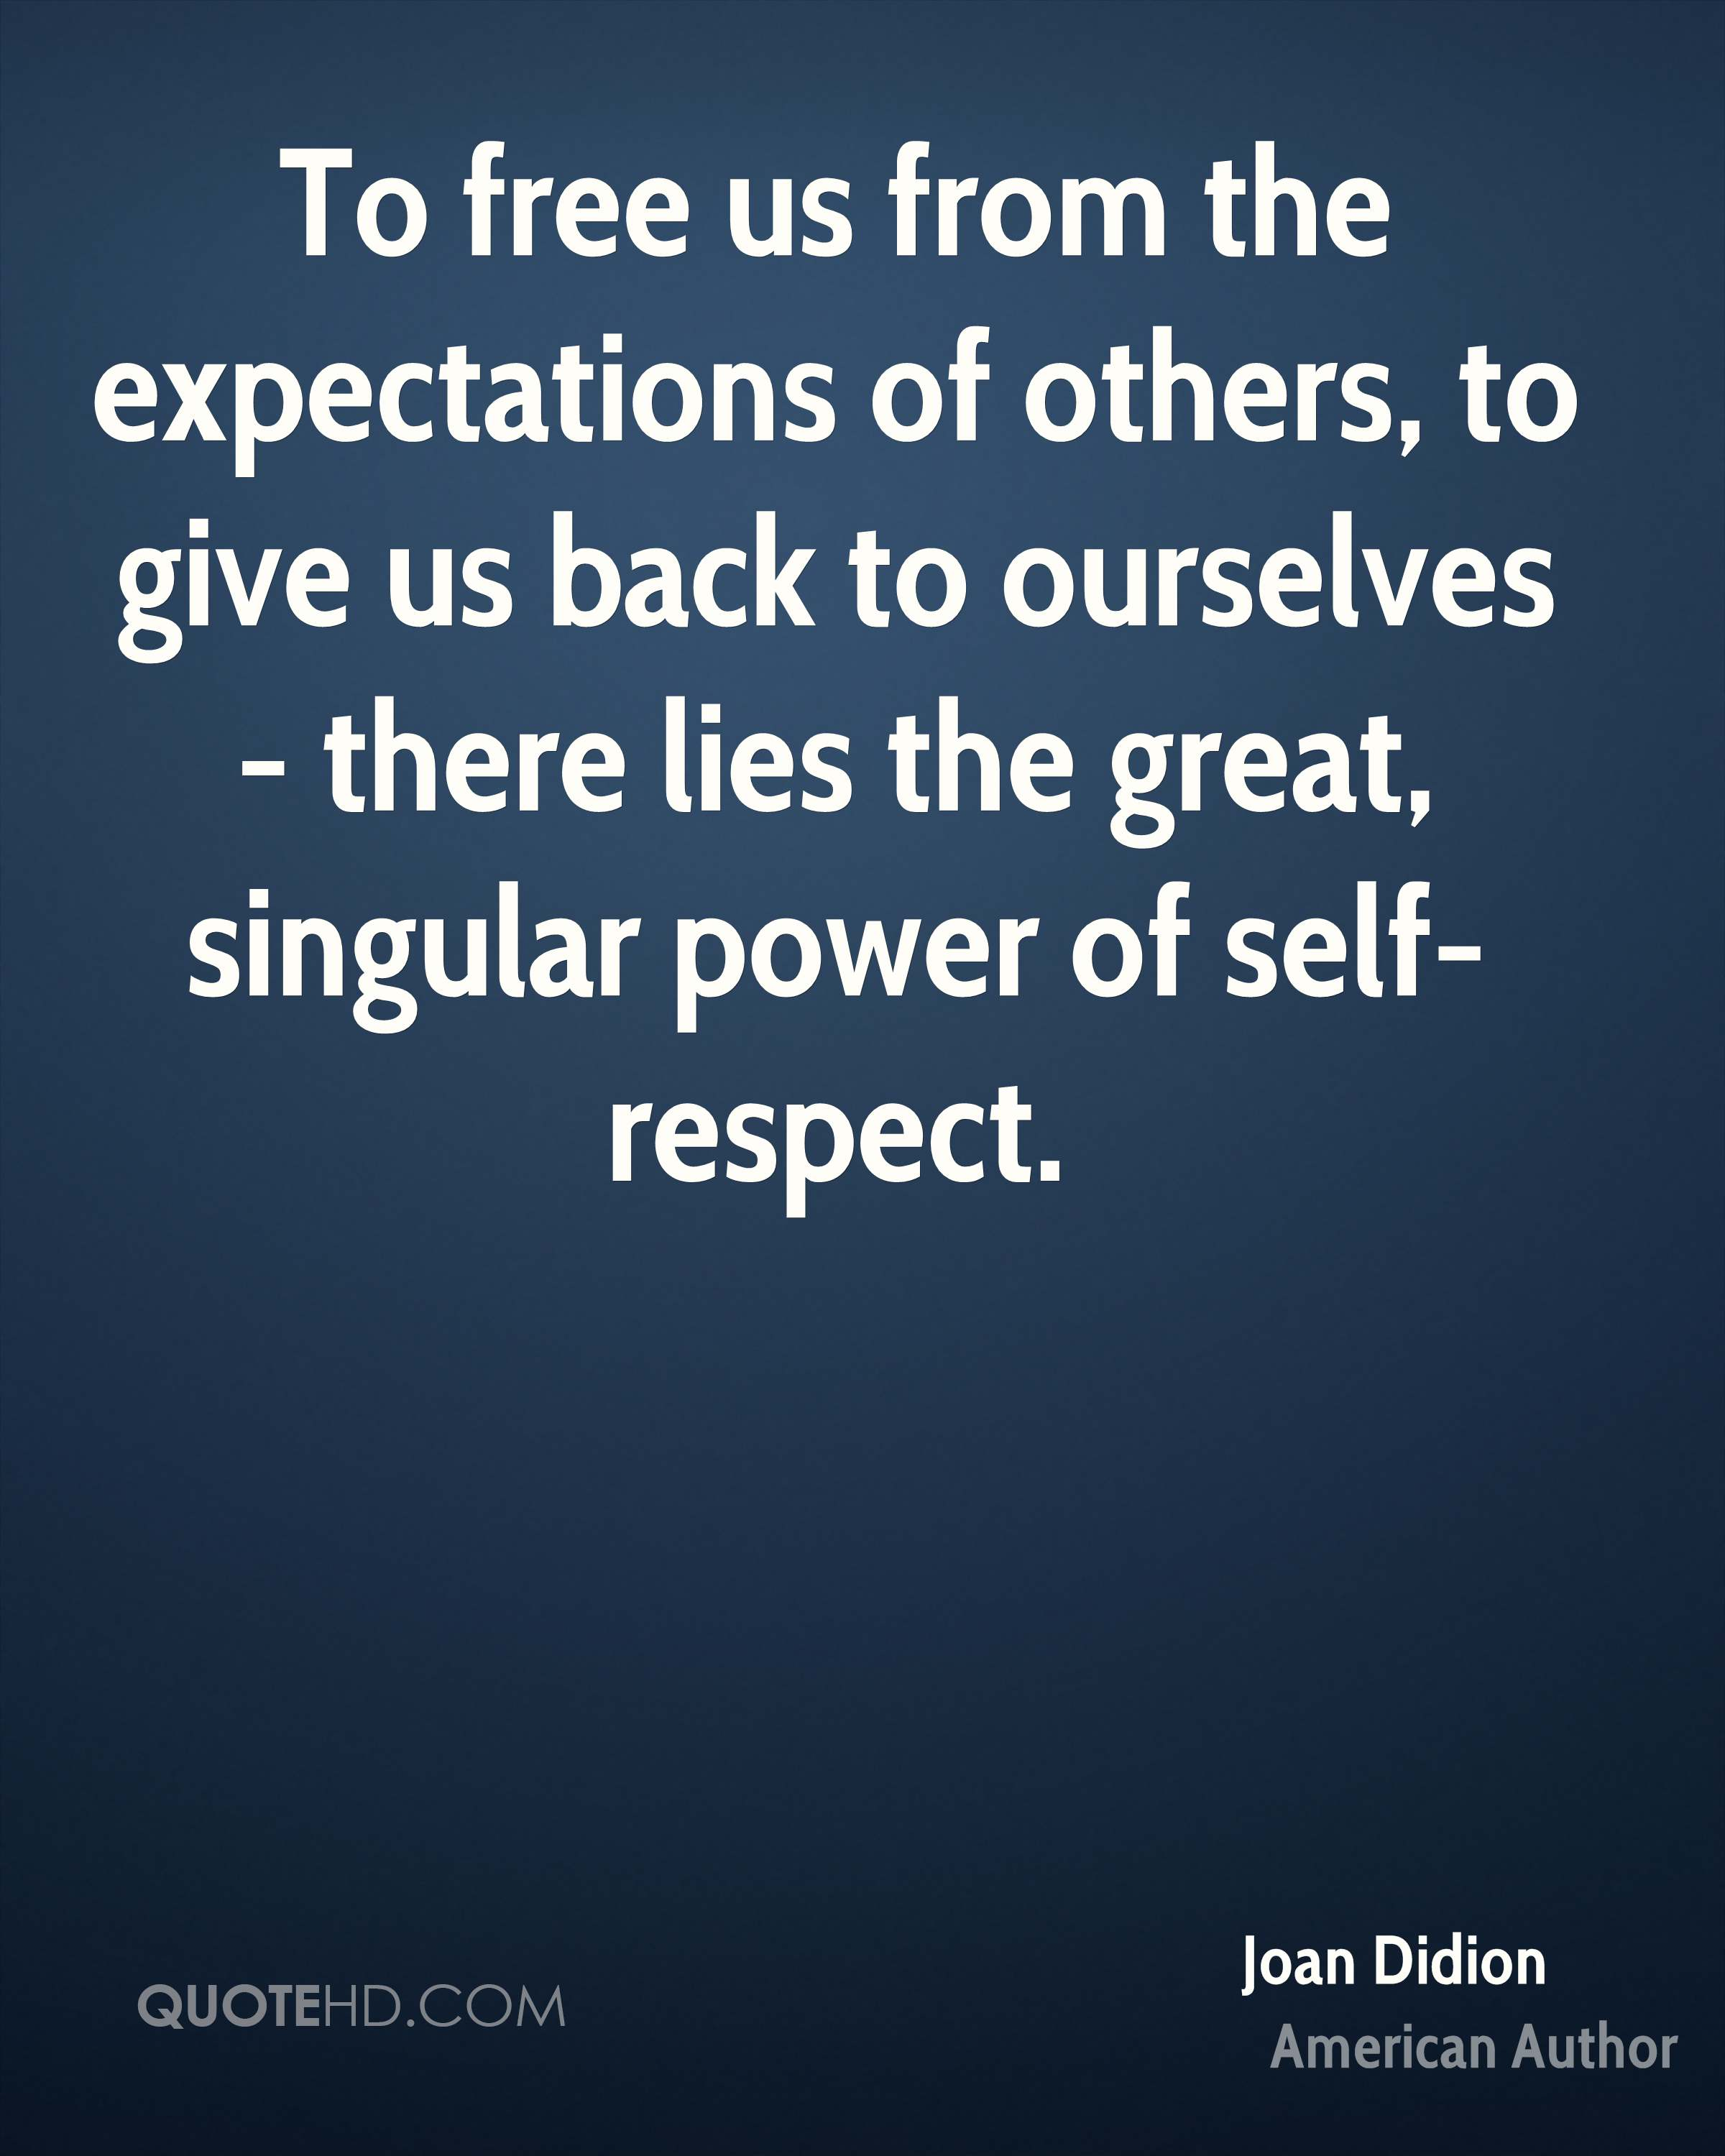 To free us from the expectations of others, to give us back to ourselves - there lies the great, singular power of self-respect.